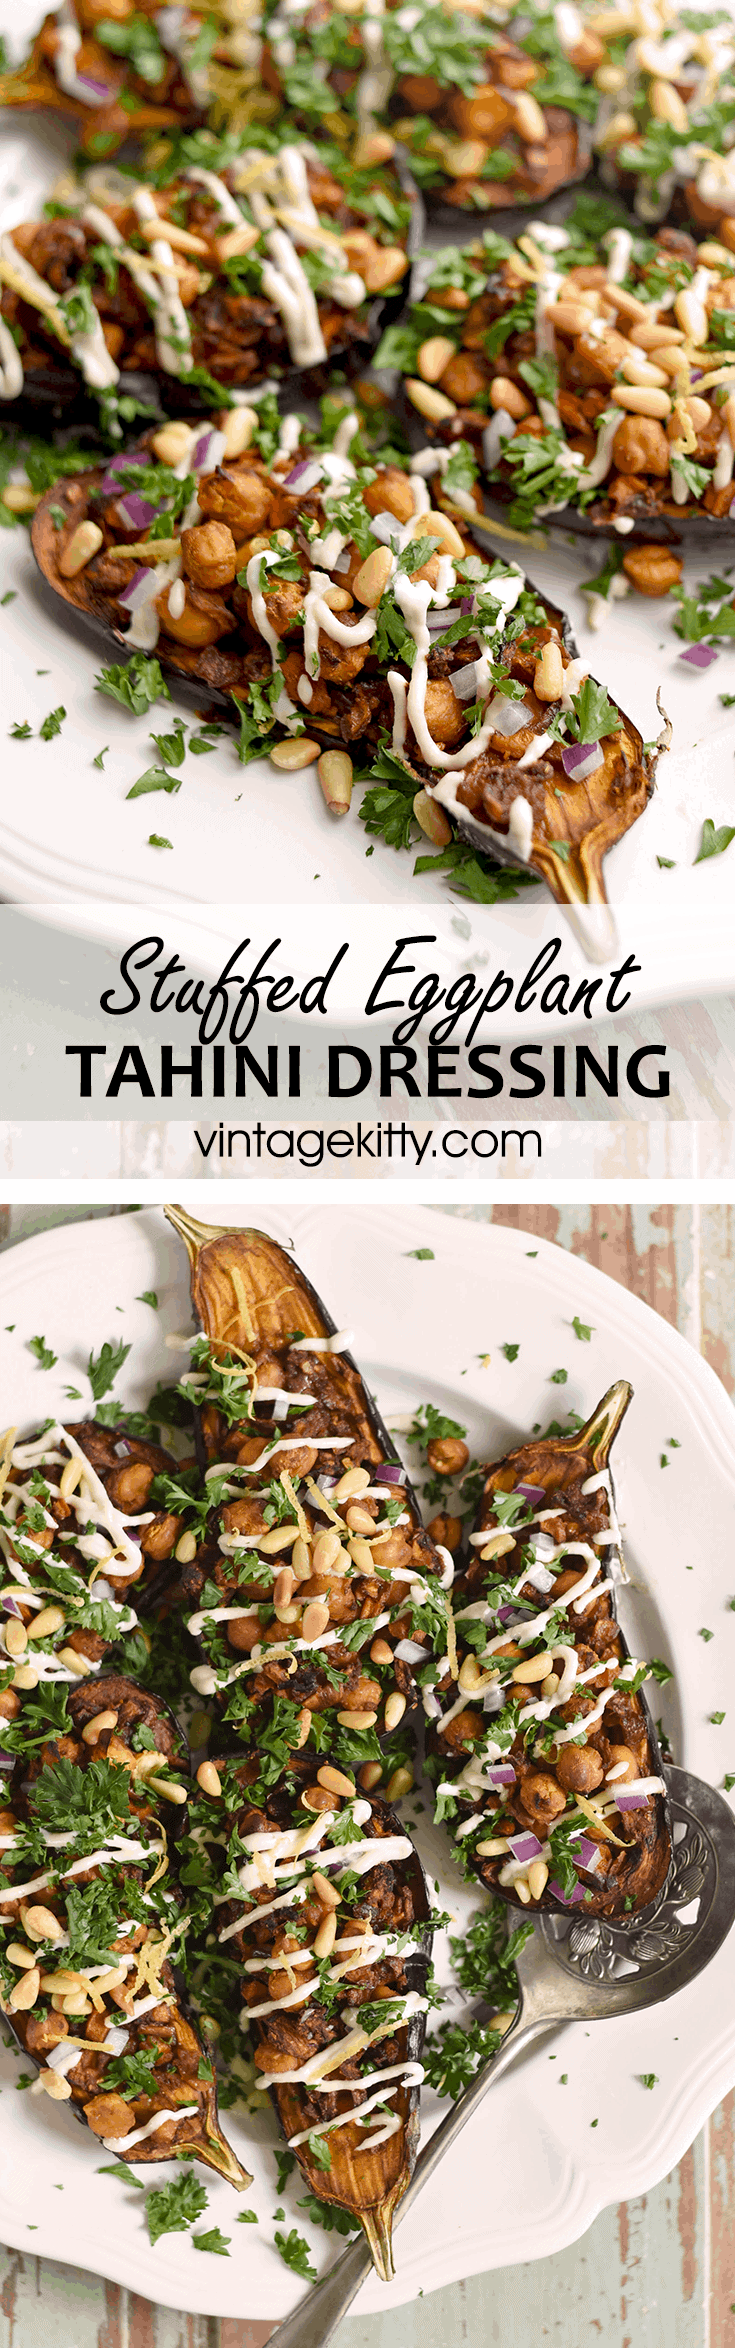 Stuffed Eggplant Pin - Stuffed Eggplant with Lemon Tahini Dressing